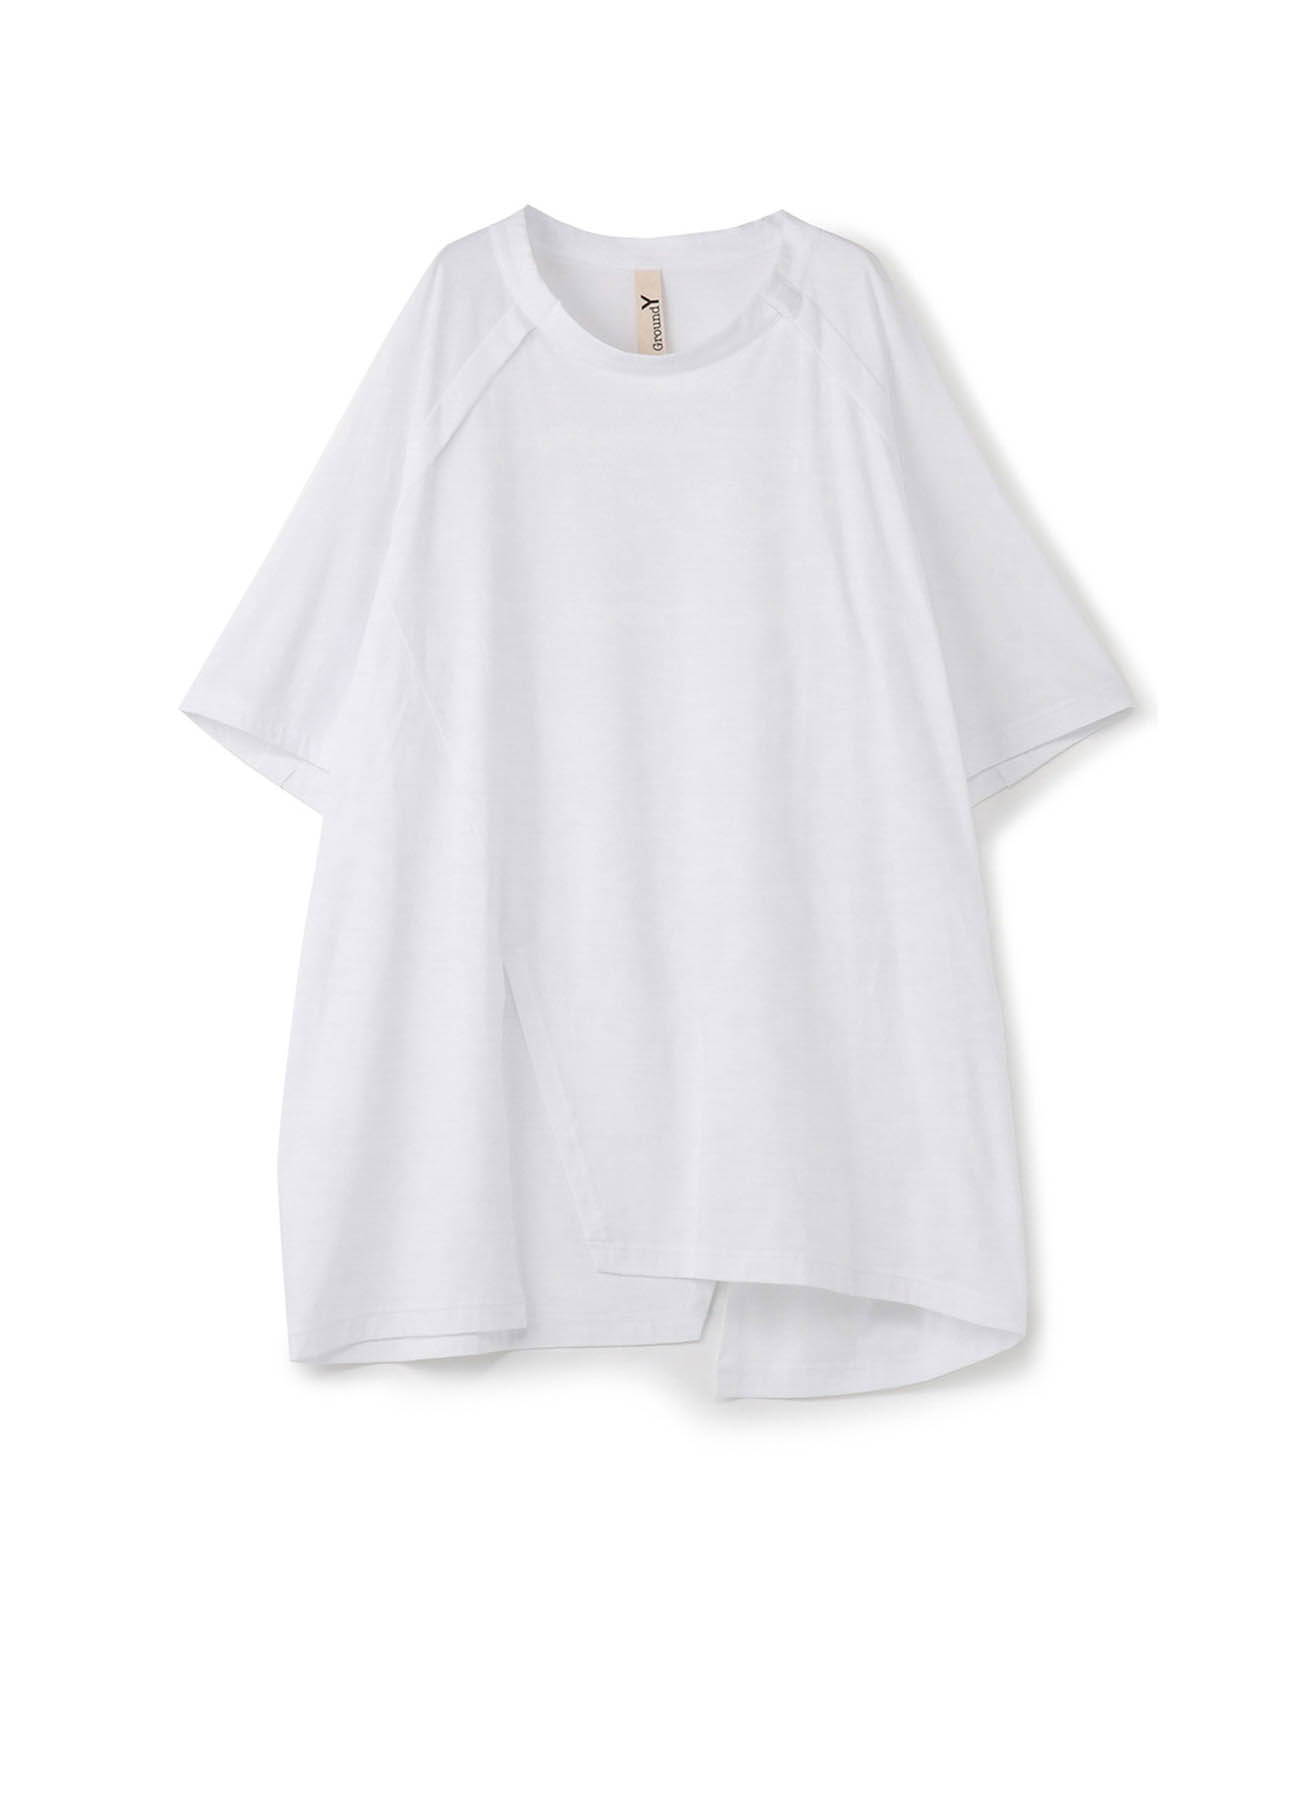 30/cotton Jersey Front Raglan Short Sleeve T